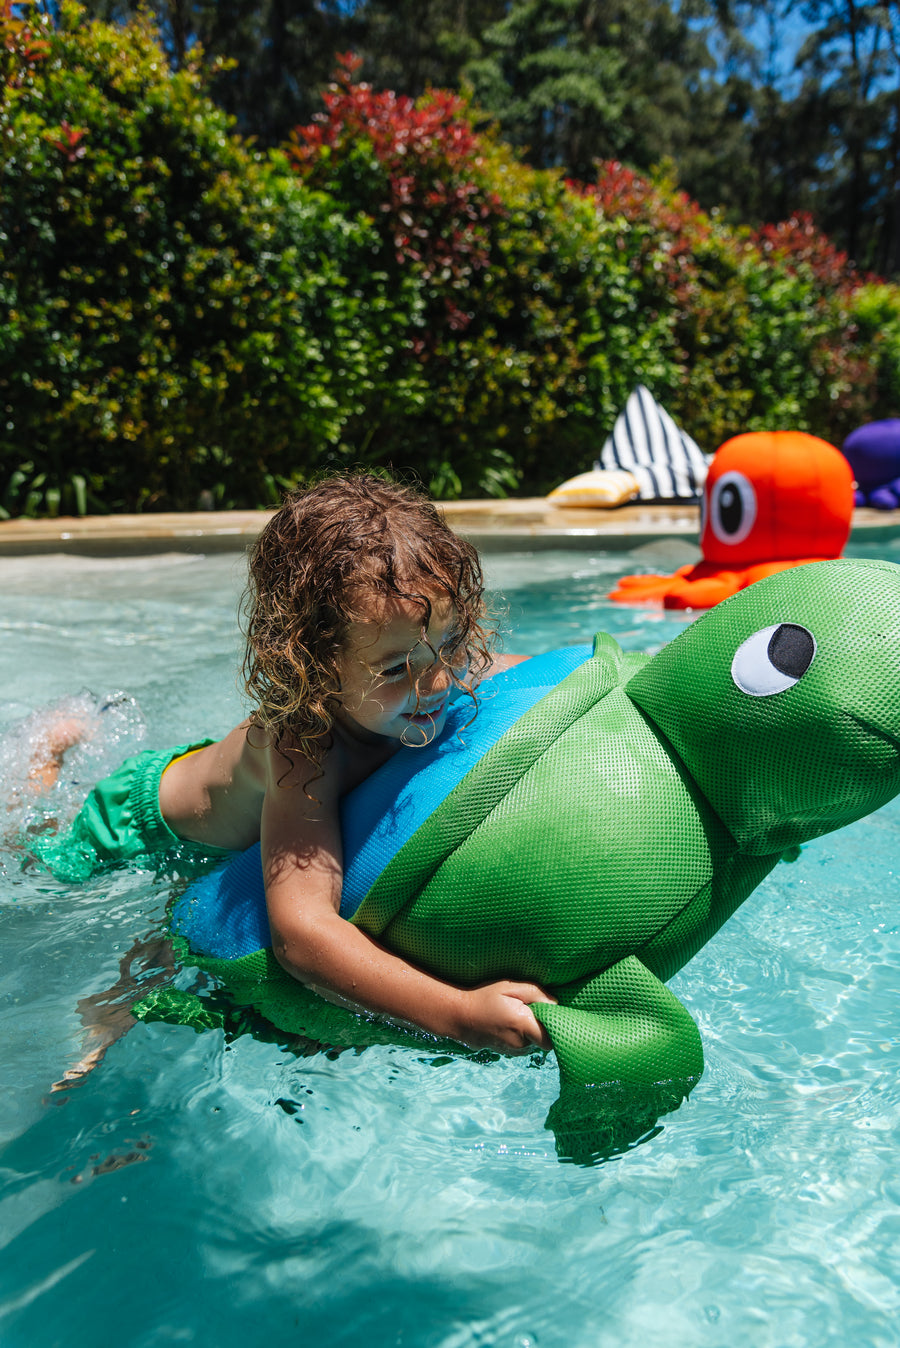 Myrtle the Turtle Pool Toy